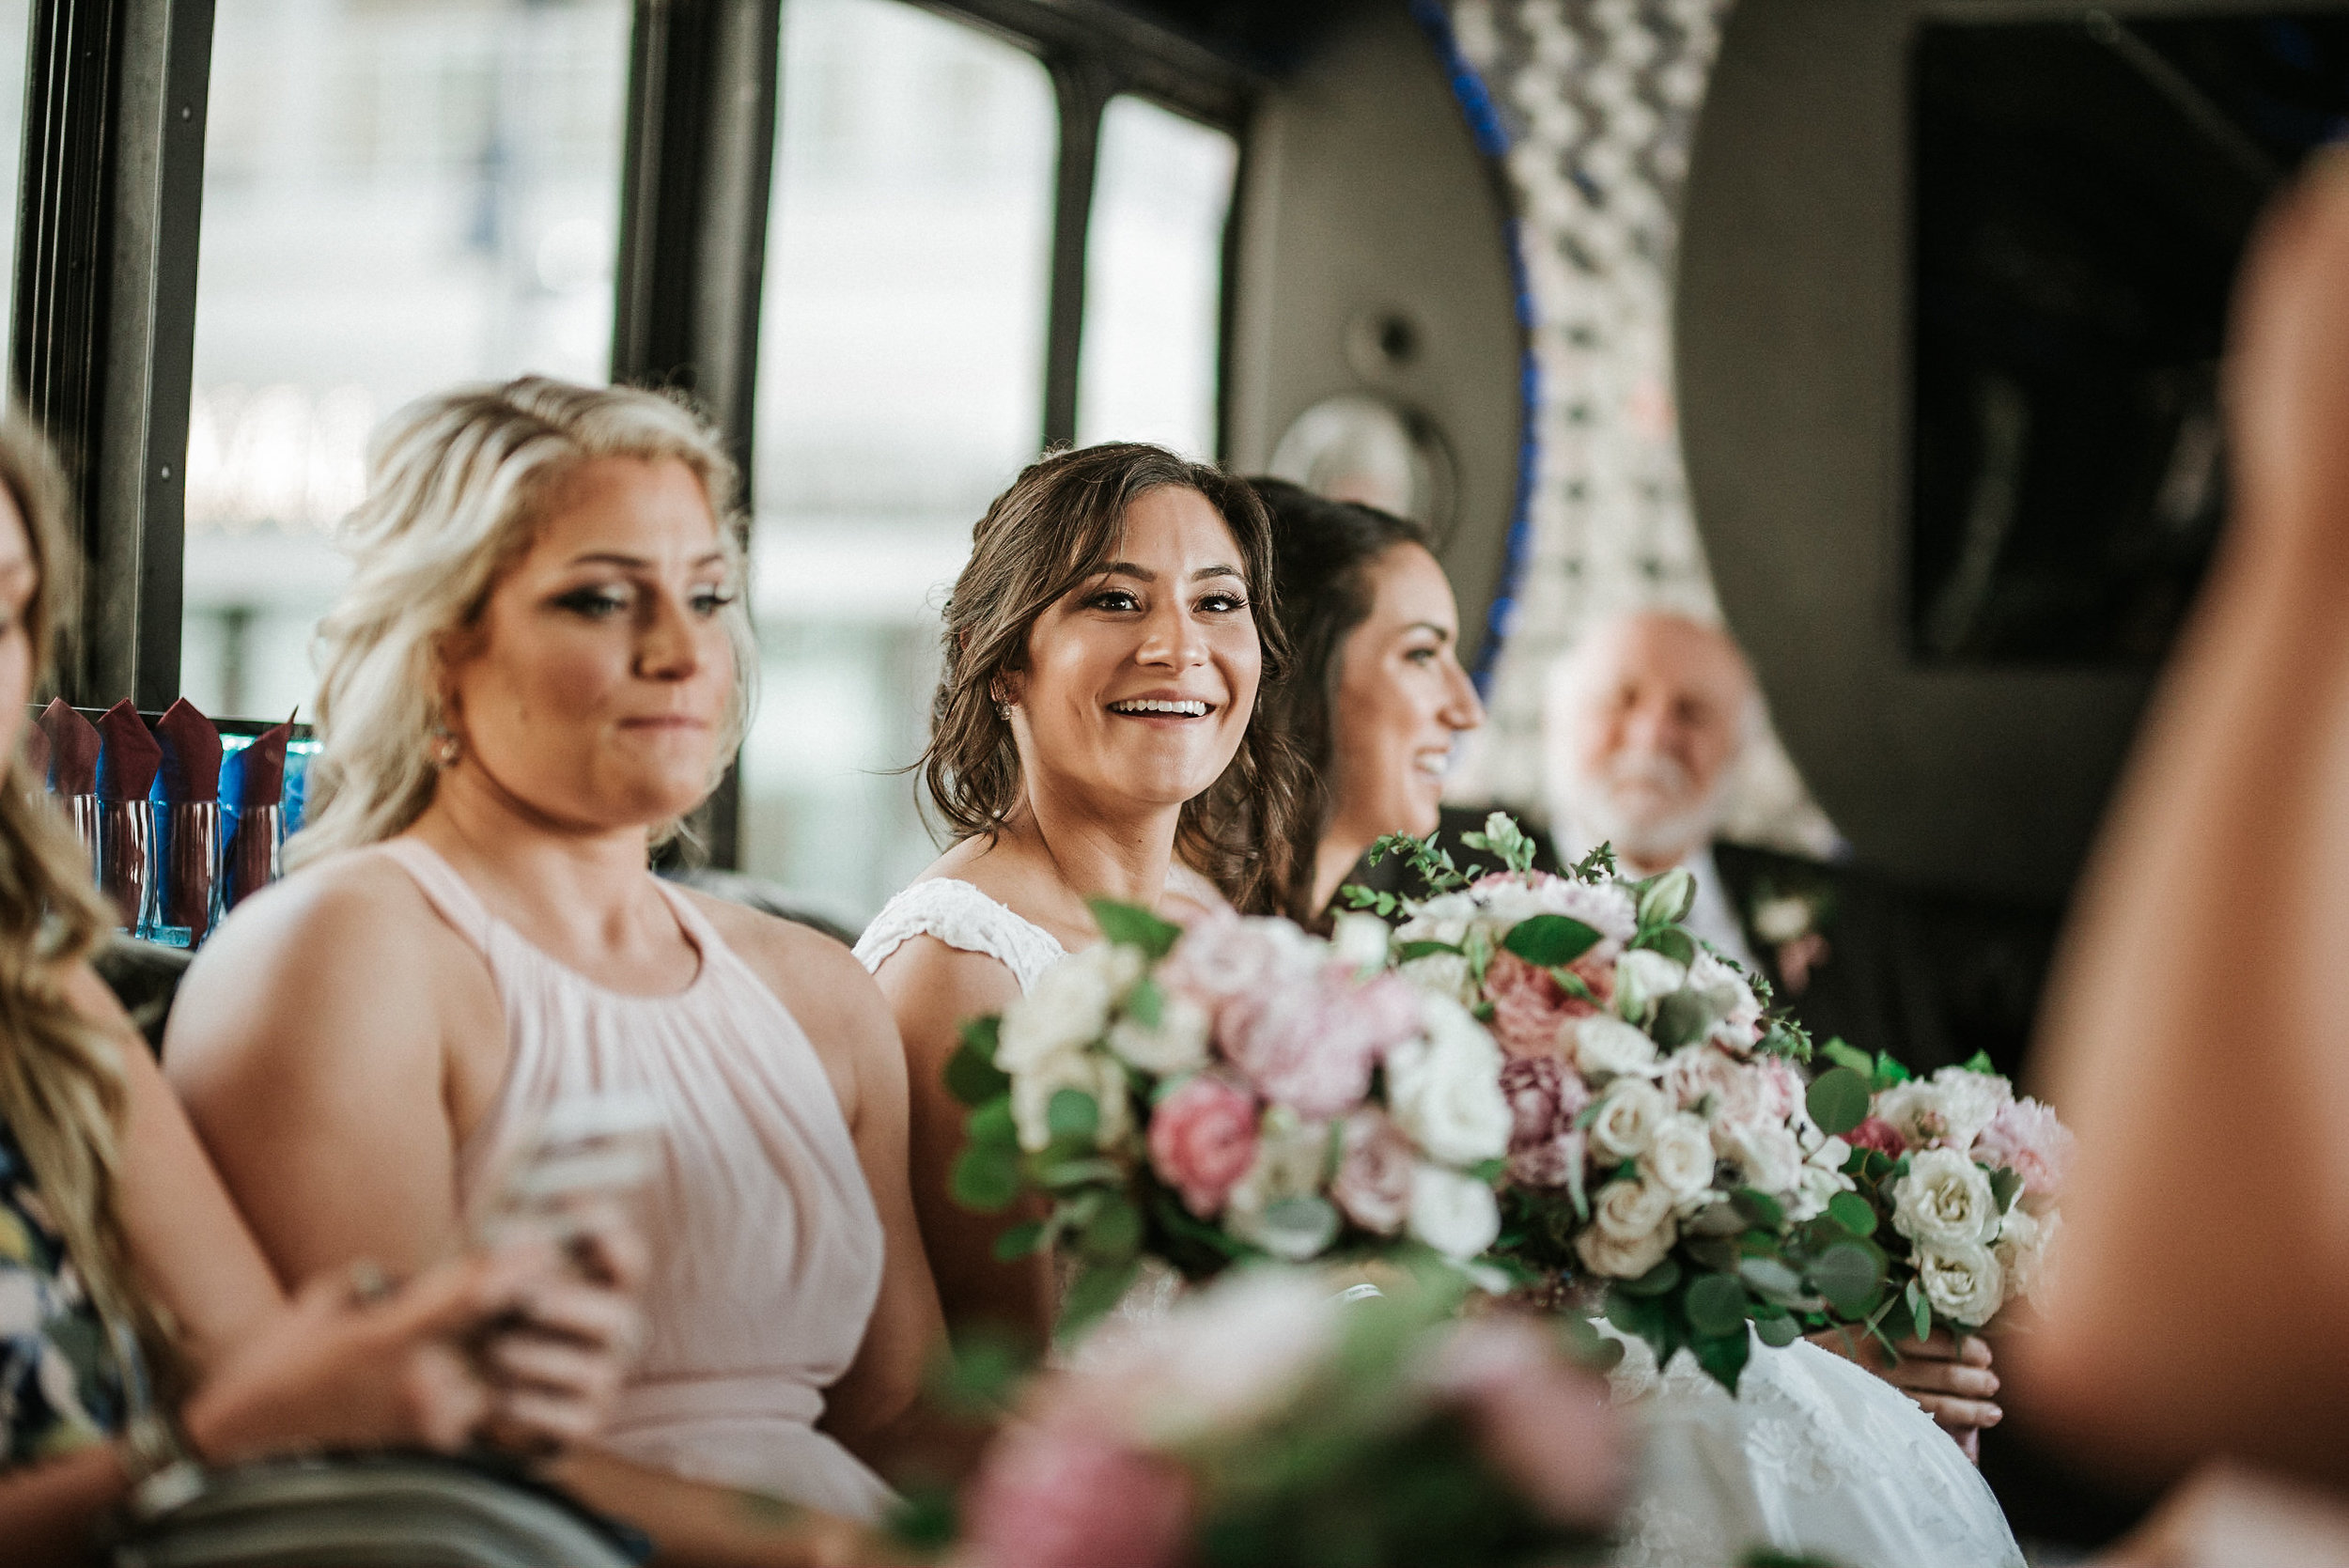 Bride on party bus